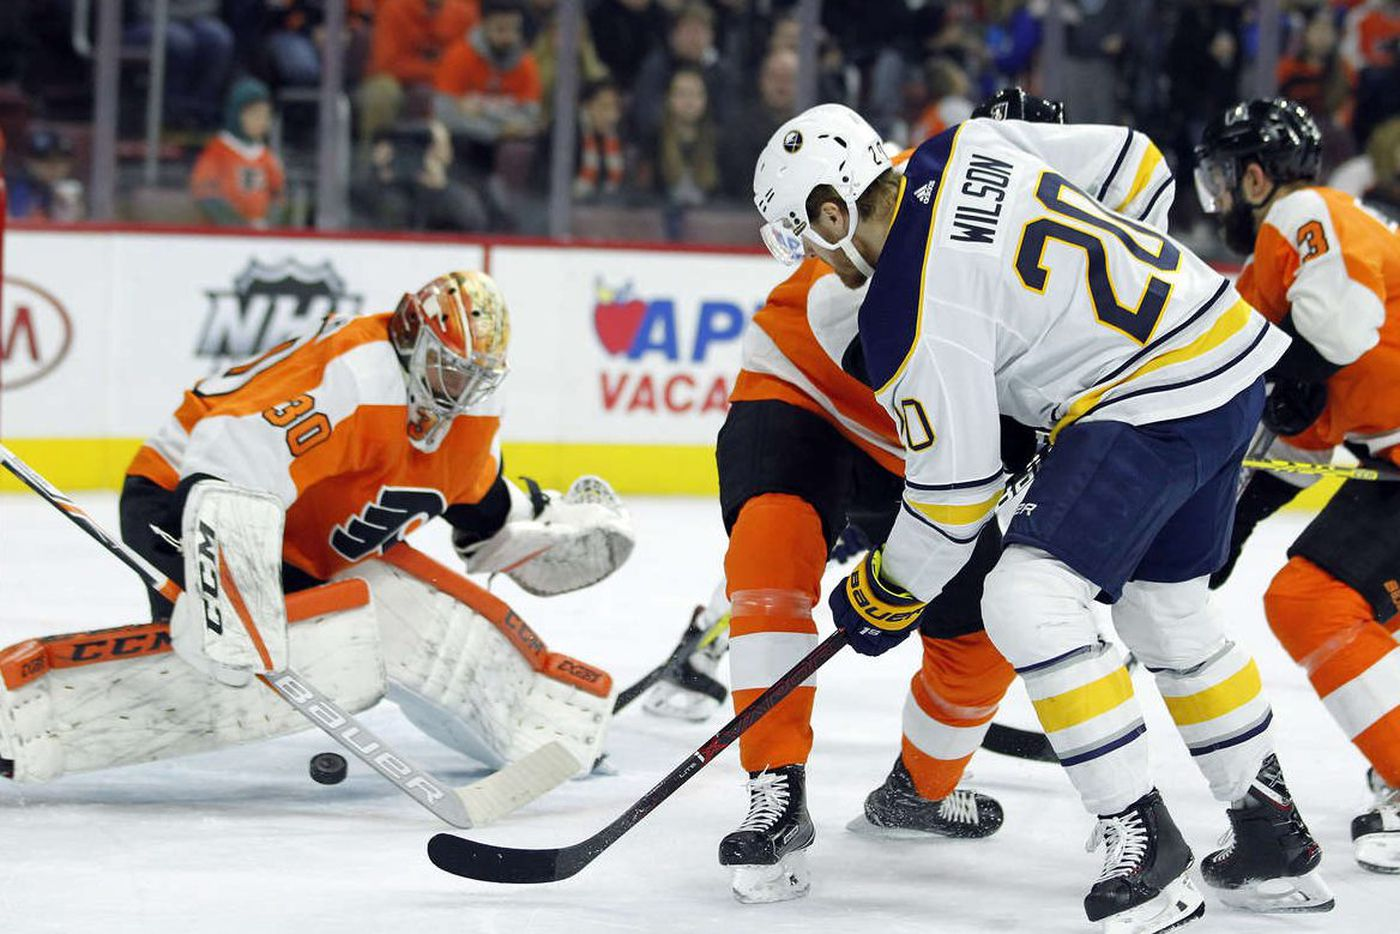 Flyers try to bounce back; Michal Neuvirth expected to get rare start